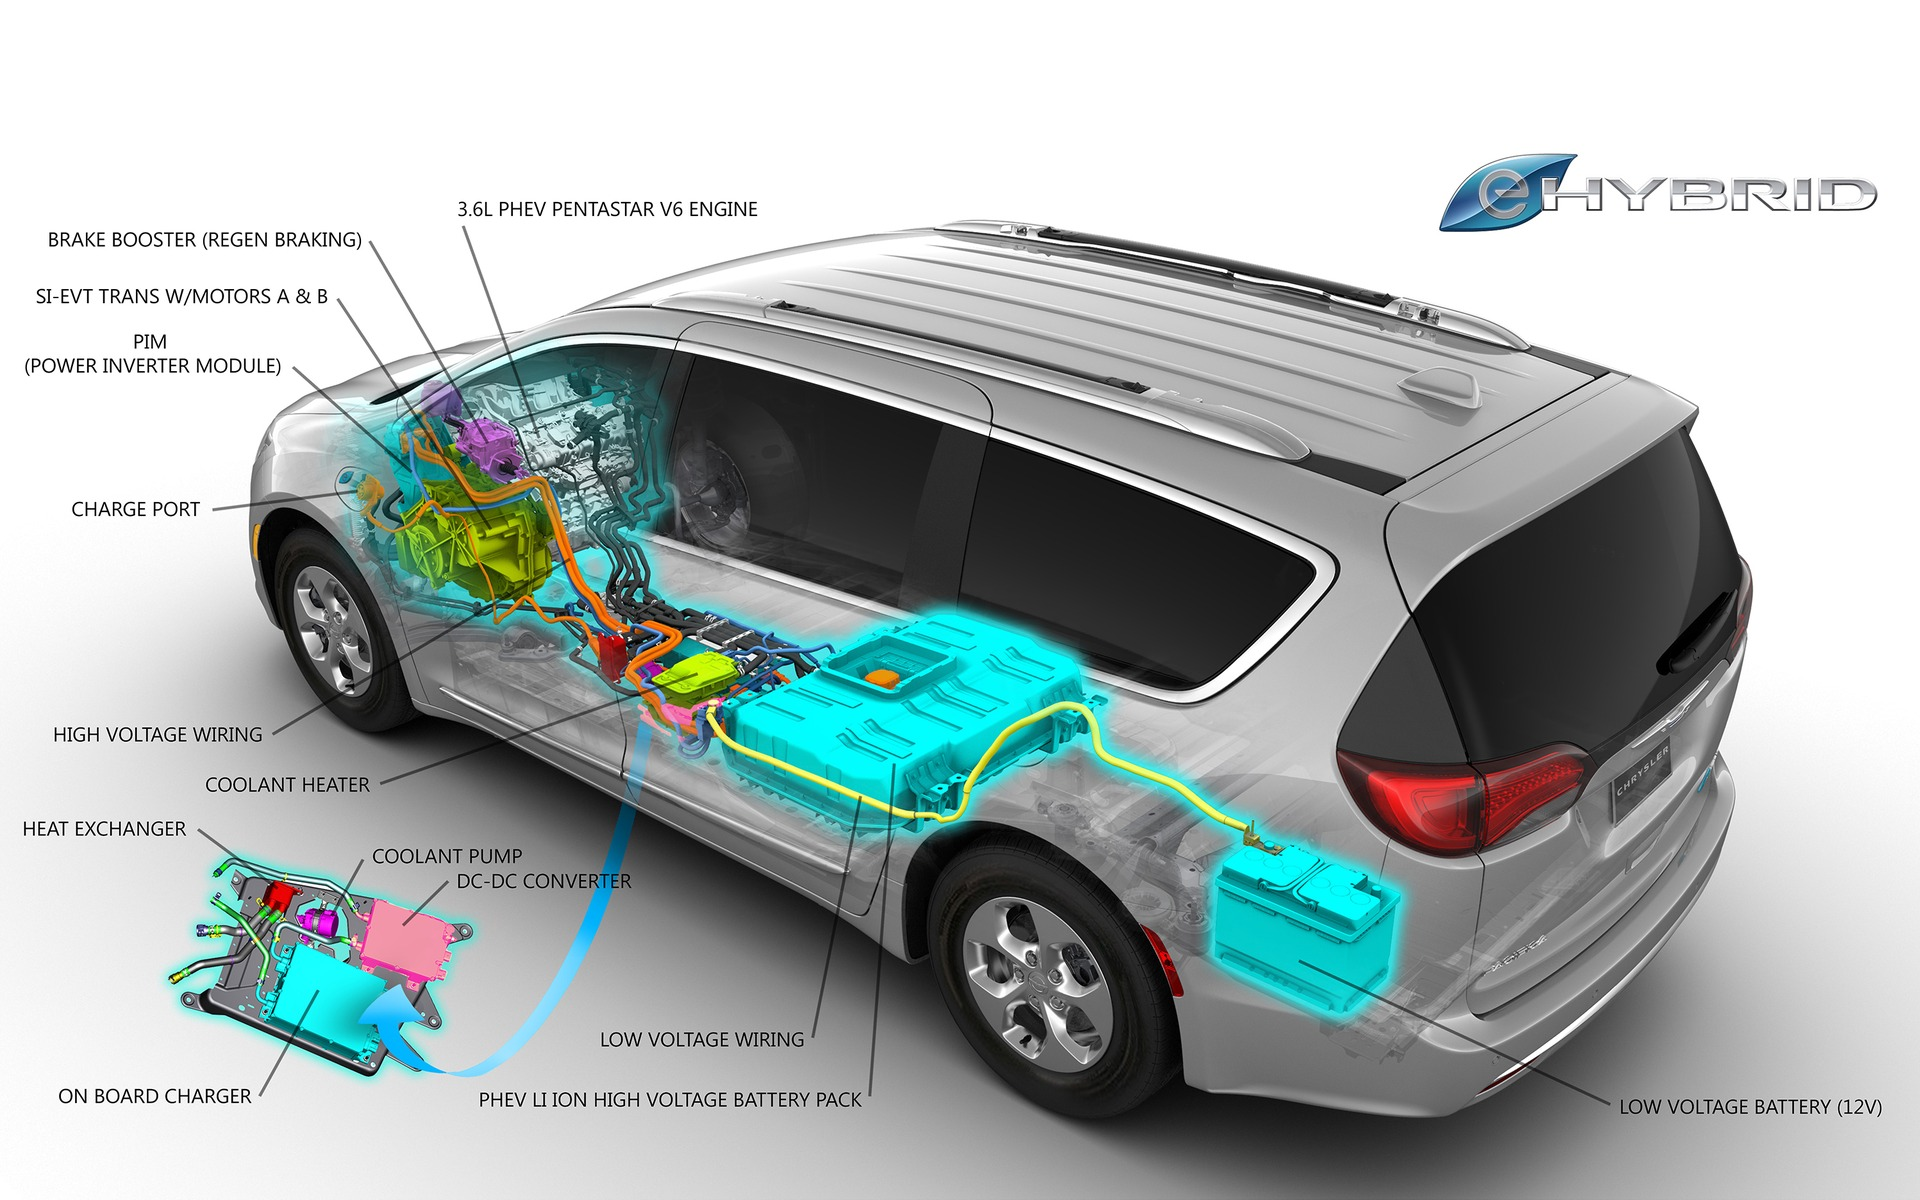 Hybrid  >> The 2017 Chrysler Pacifica Hybrid Qualifies For Maximum Green